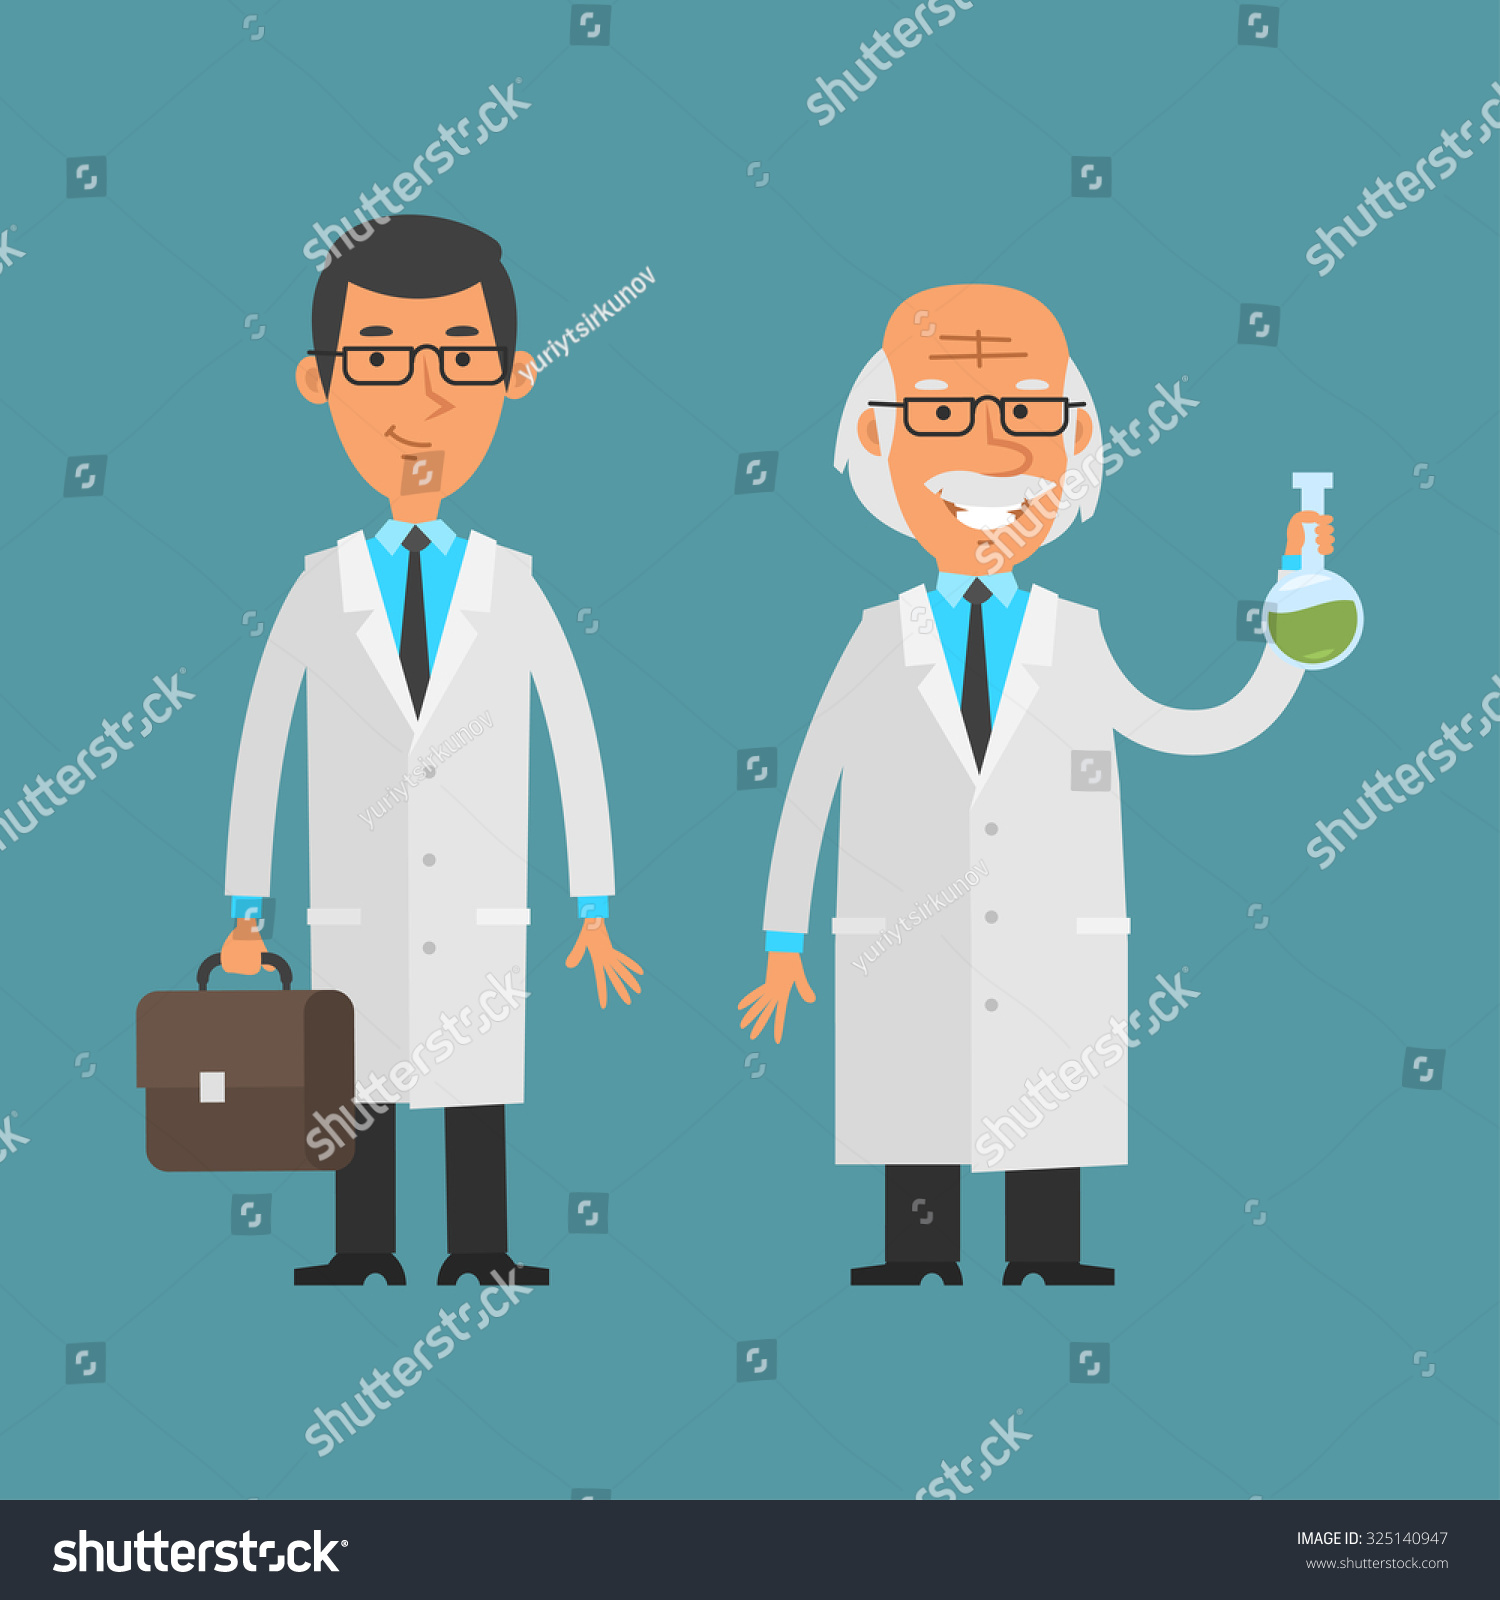 Young vs Experienced Chemist